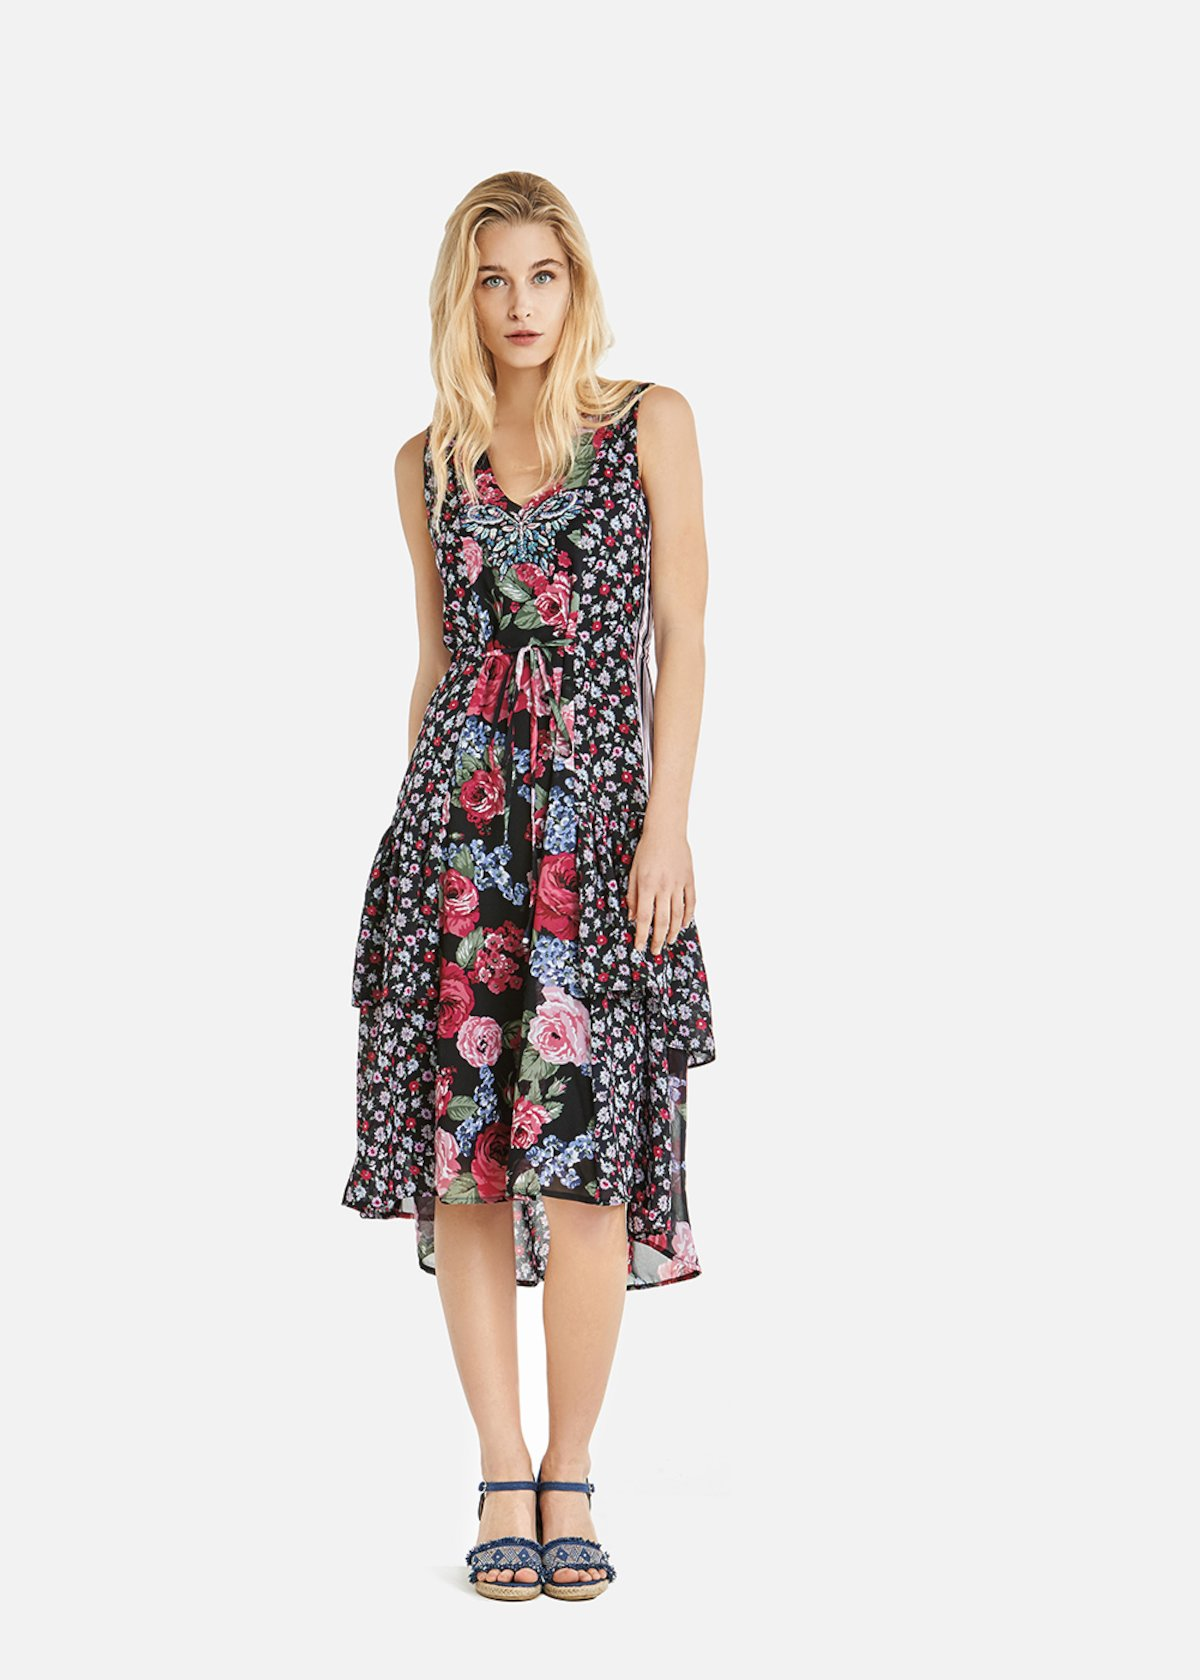 Aurelien dress with double floral print